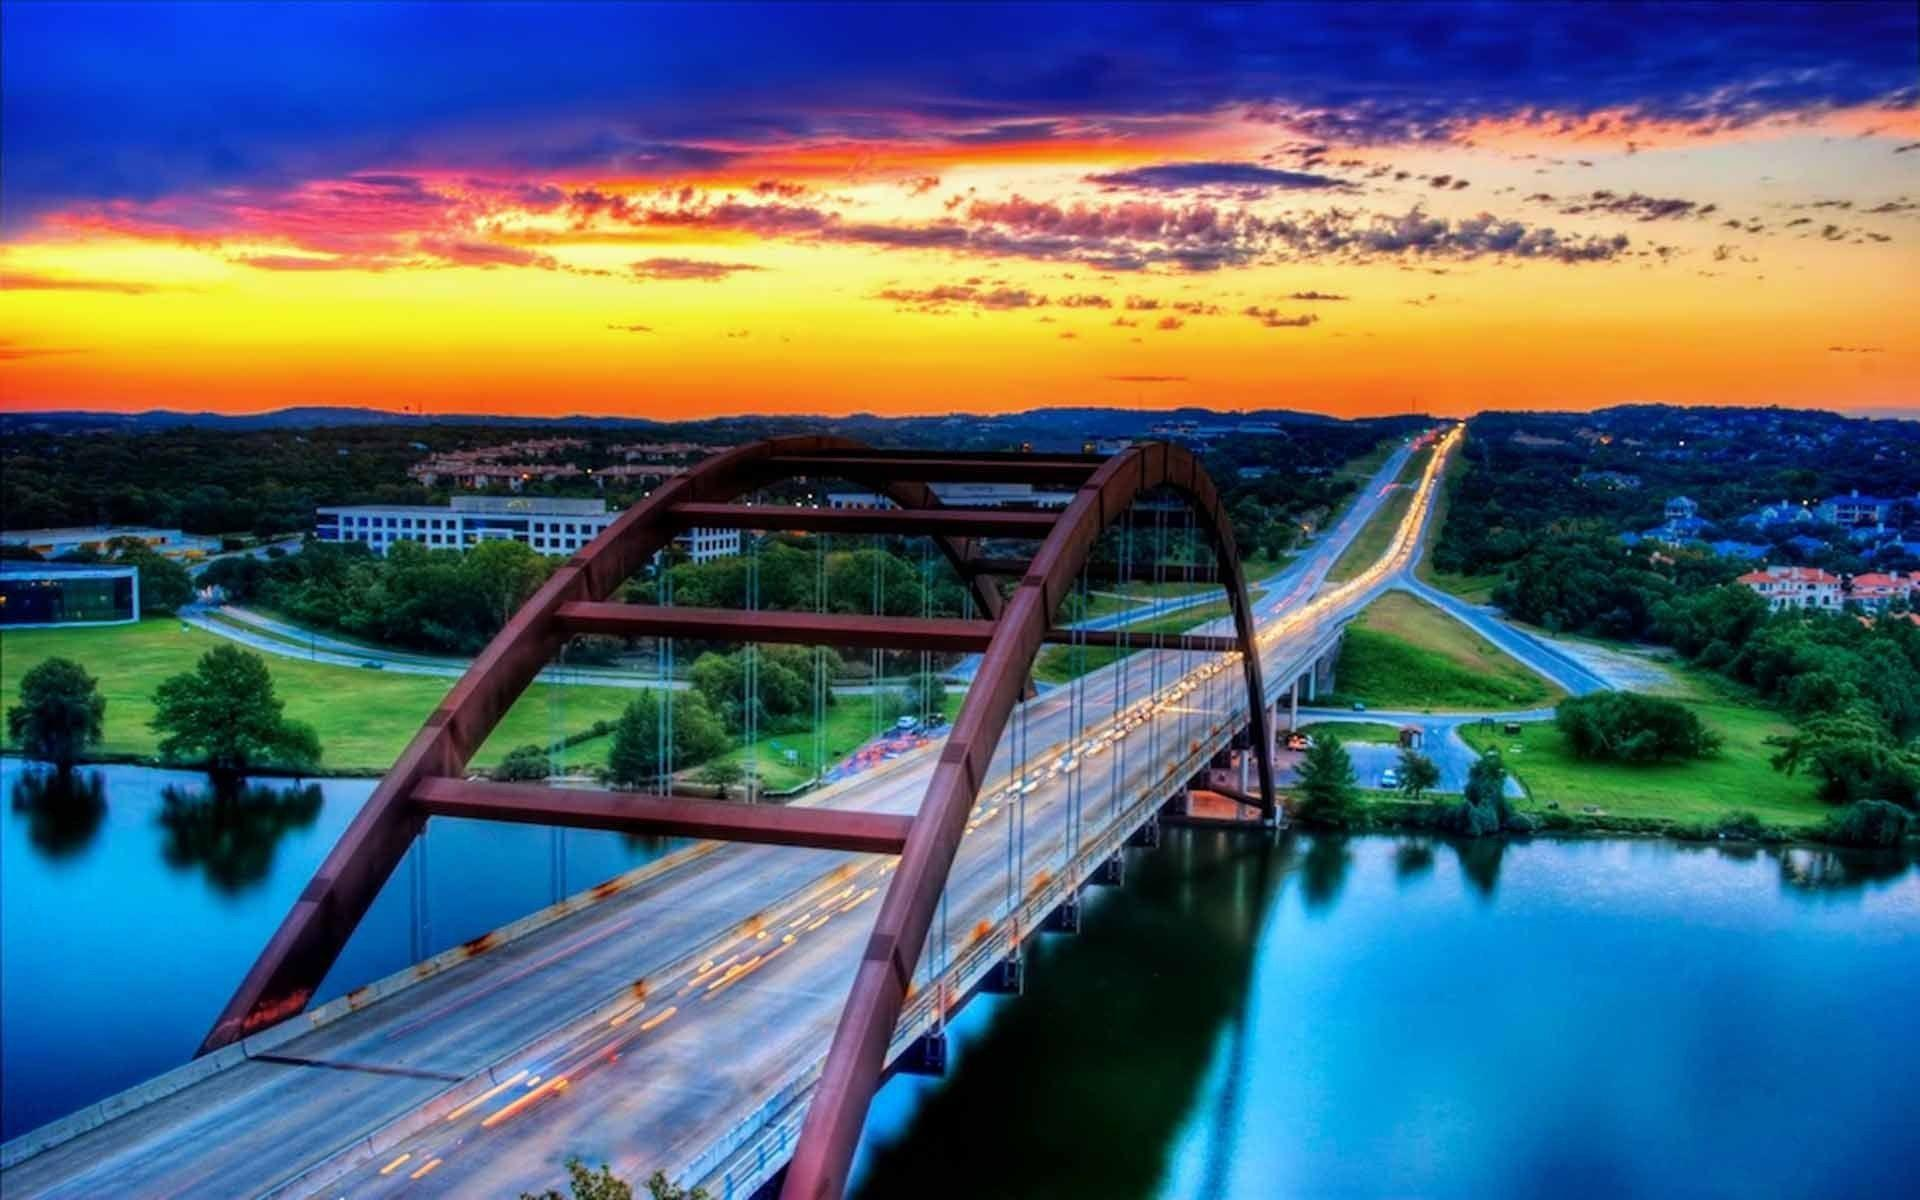 austin bridges cityscapes best widescreen background awesome #aoWa